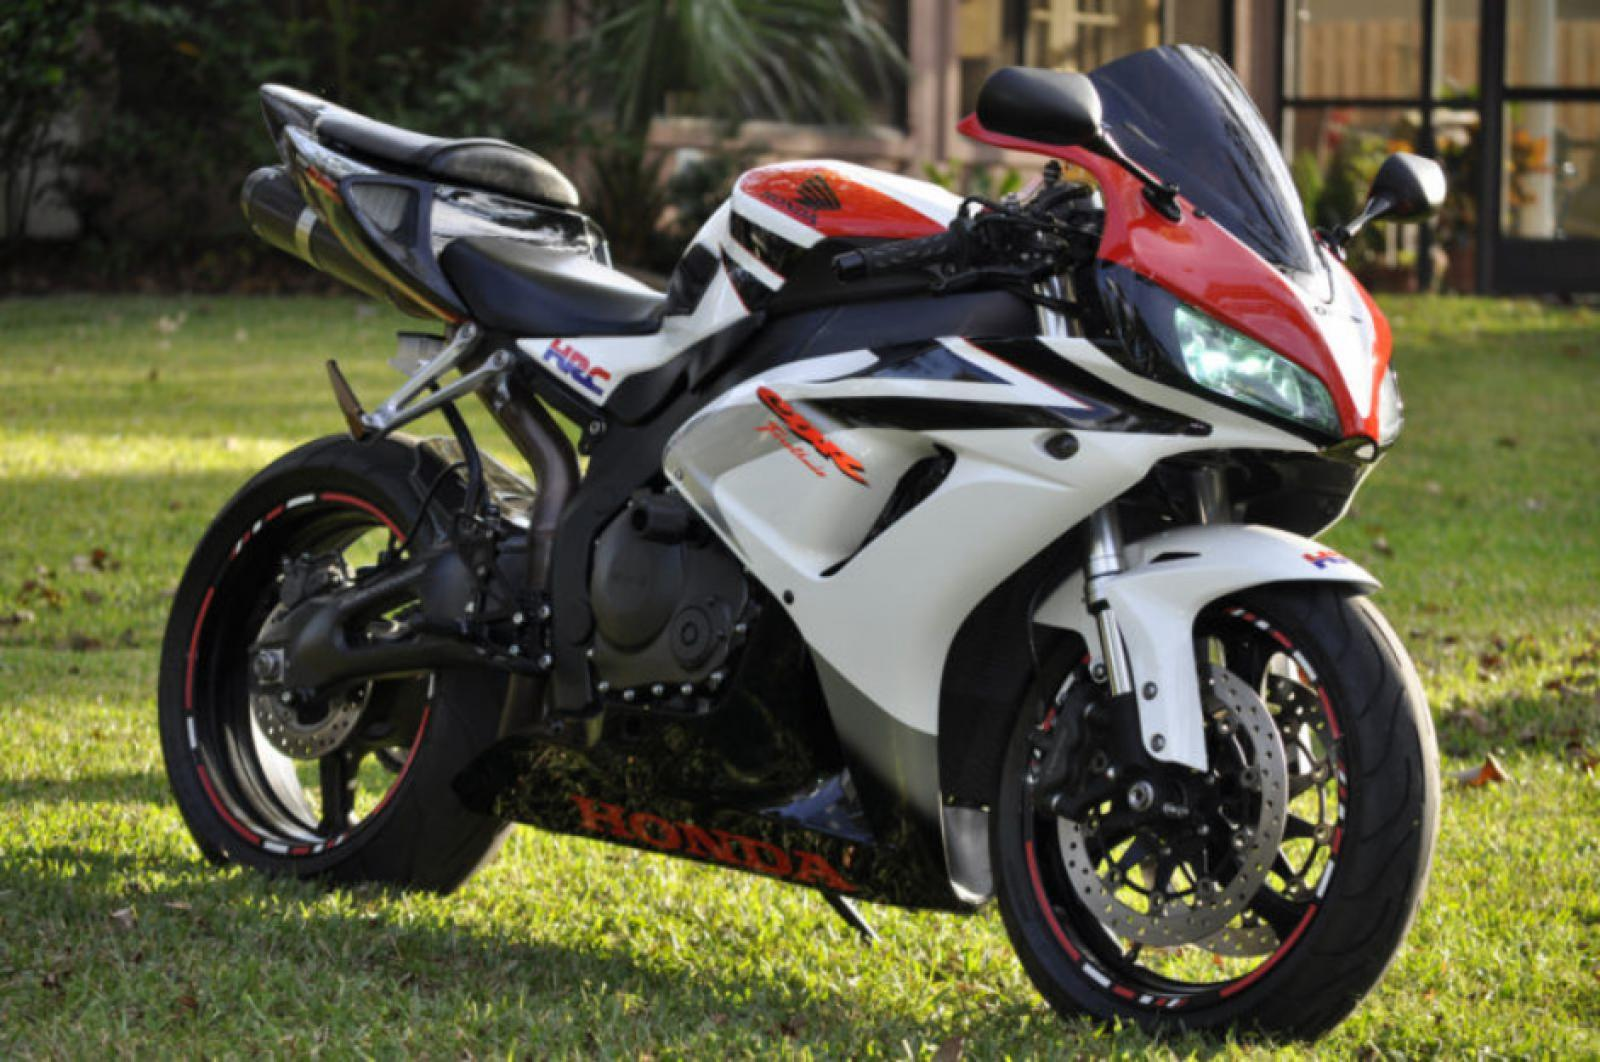 2007 honda cbr1000rr fireblade moto zombdrive com. Black Bedroom Furniture Sets. Home Design Ideas